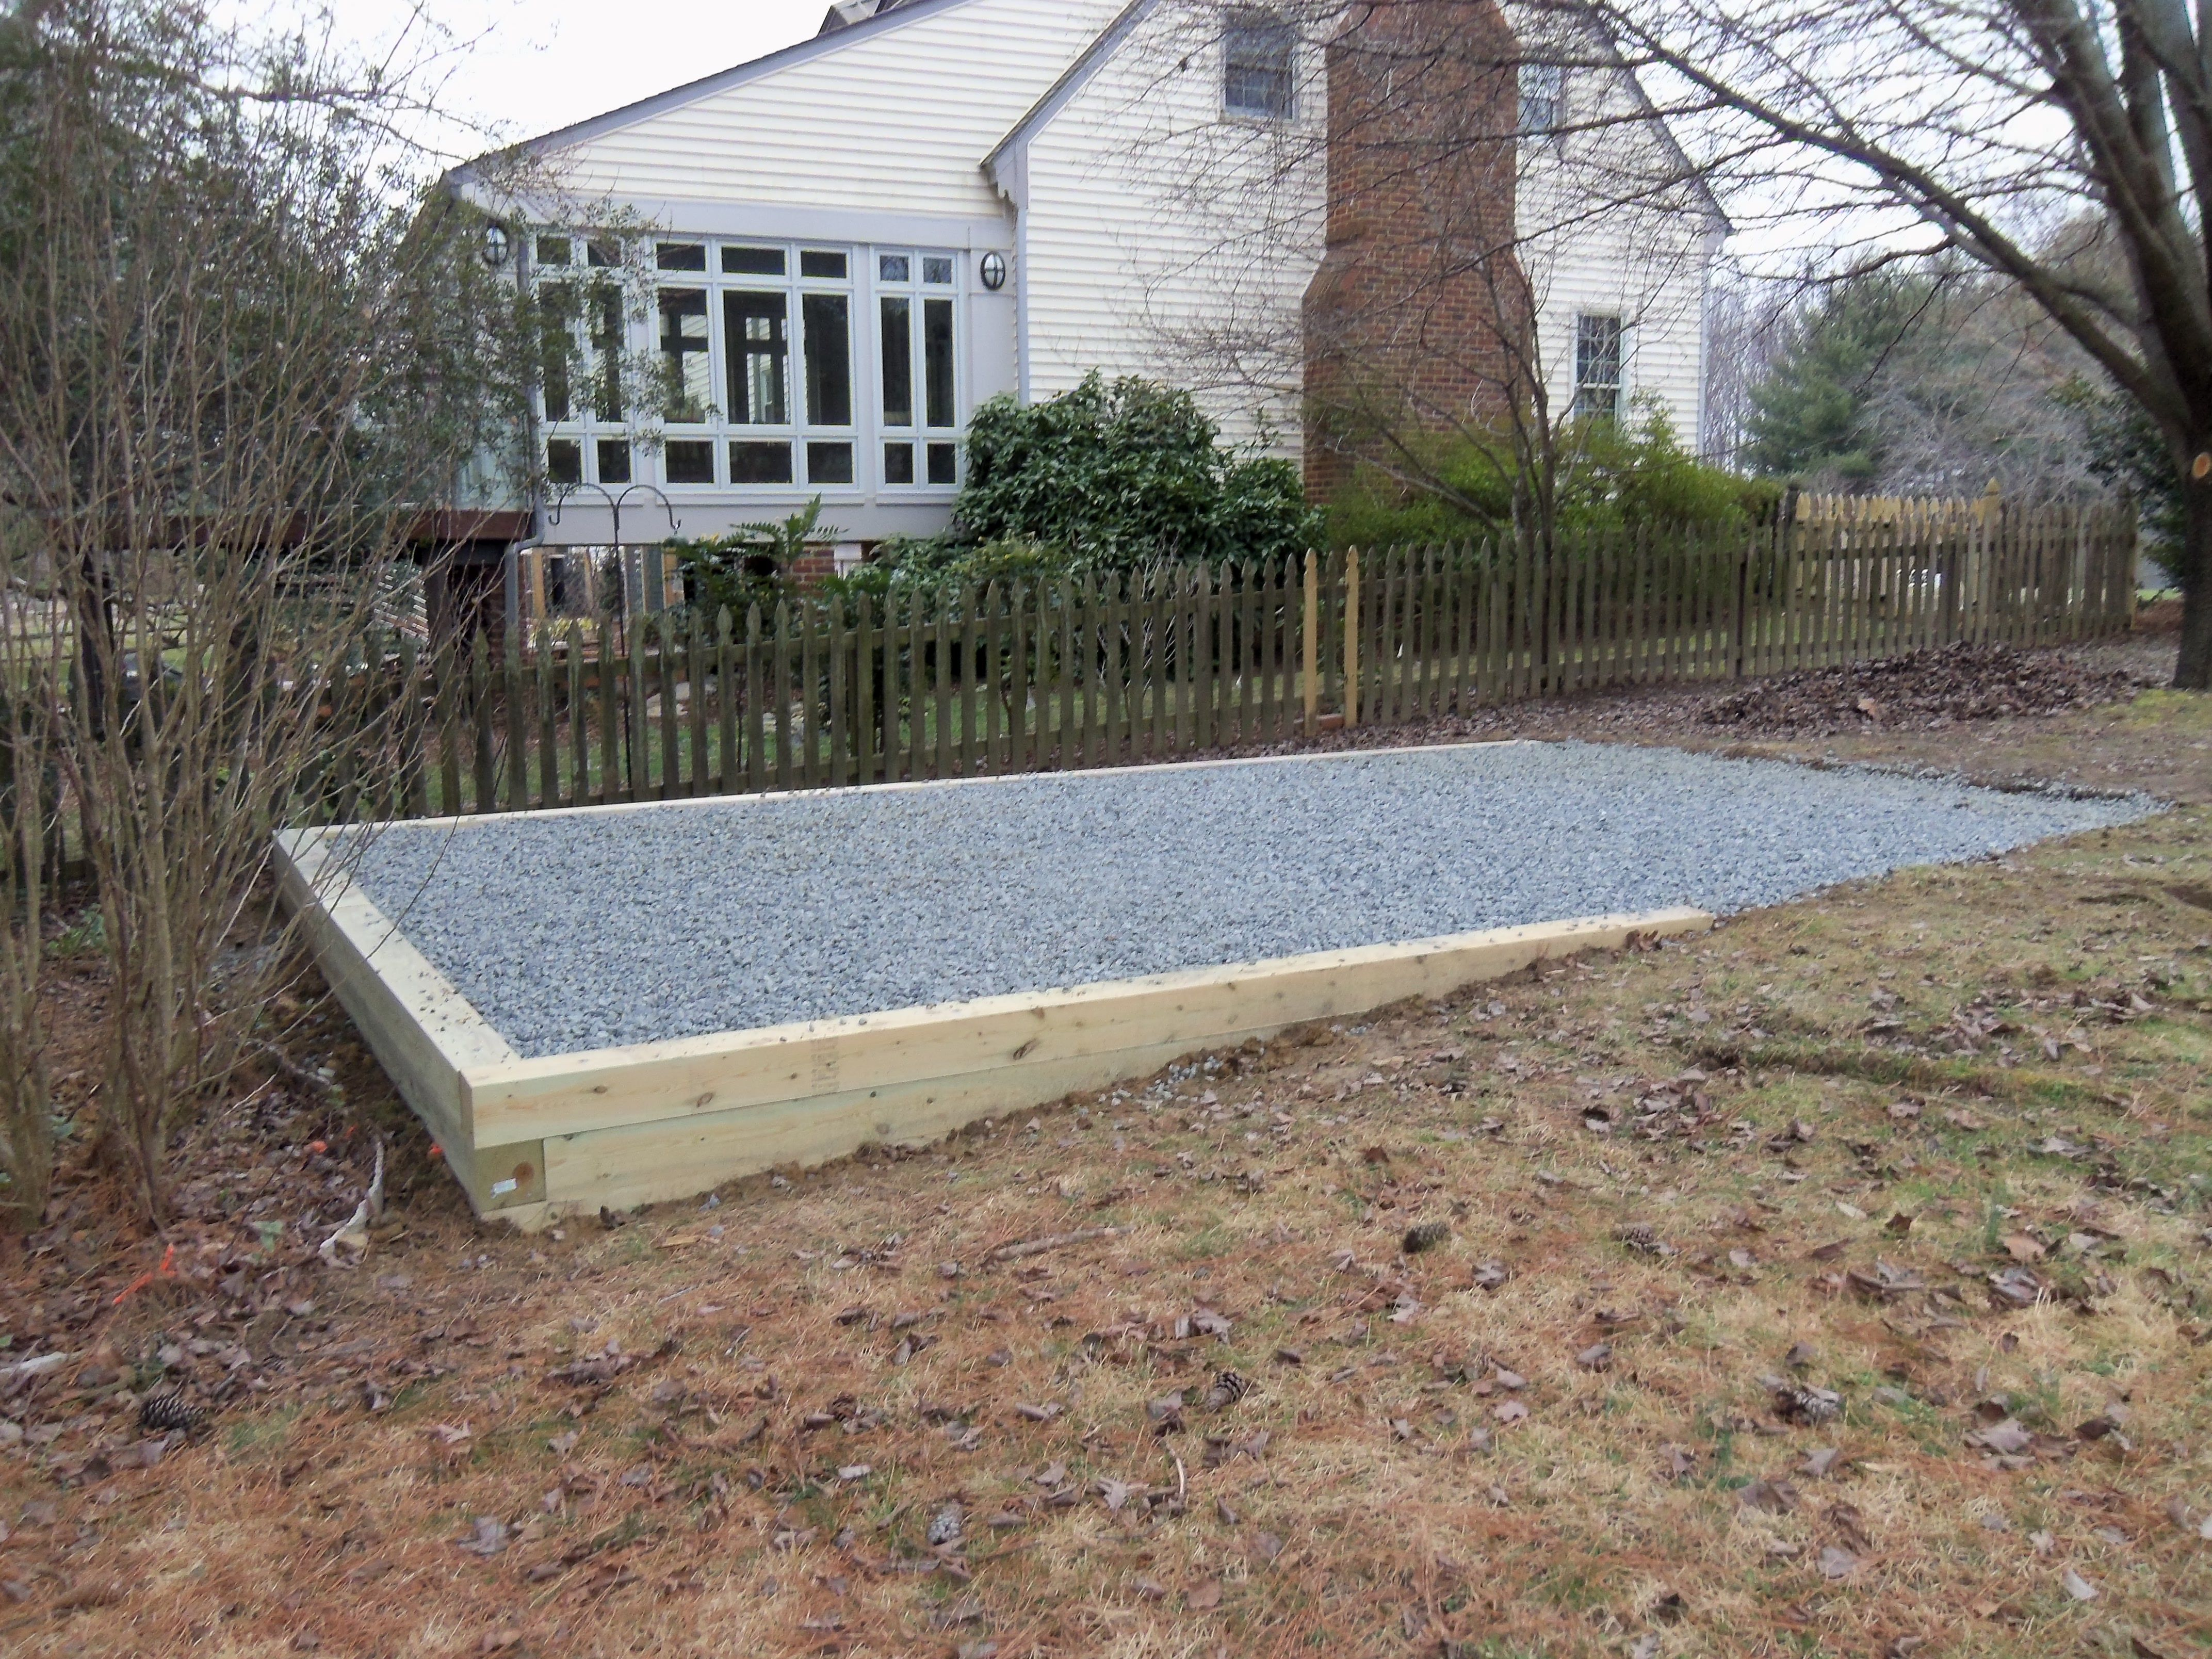 shed ramps pin of application to for wny after pebblestone ramp sheds